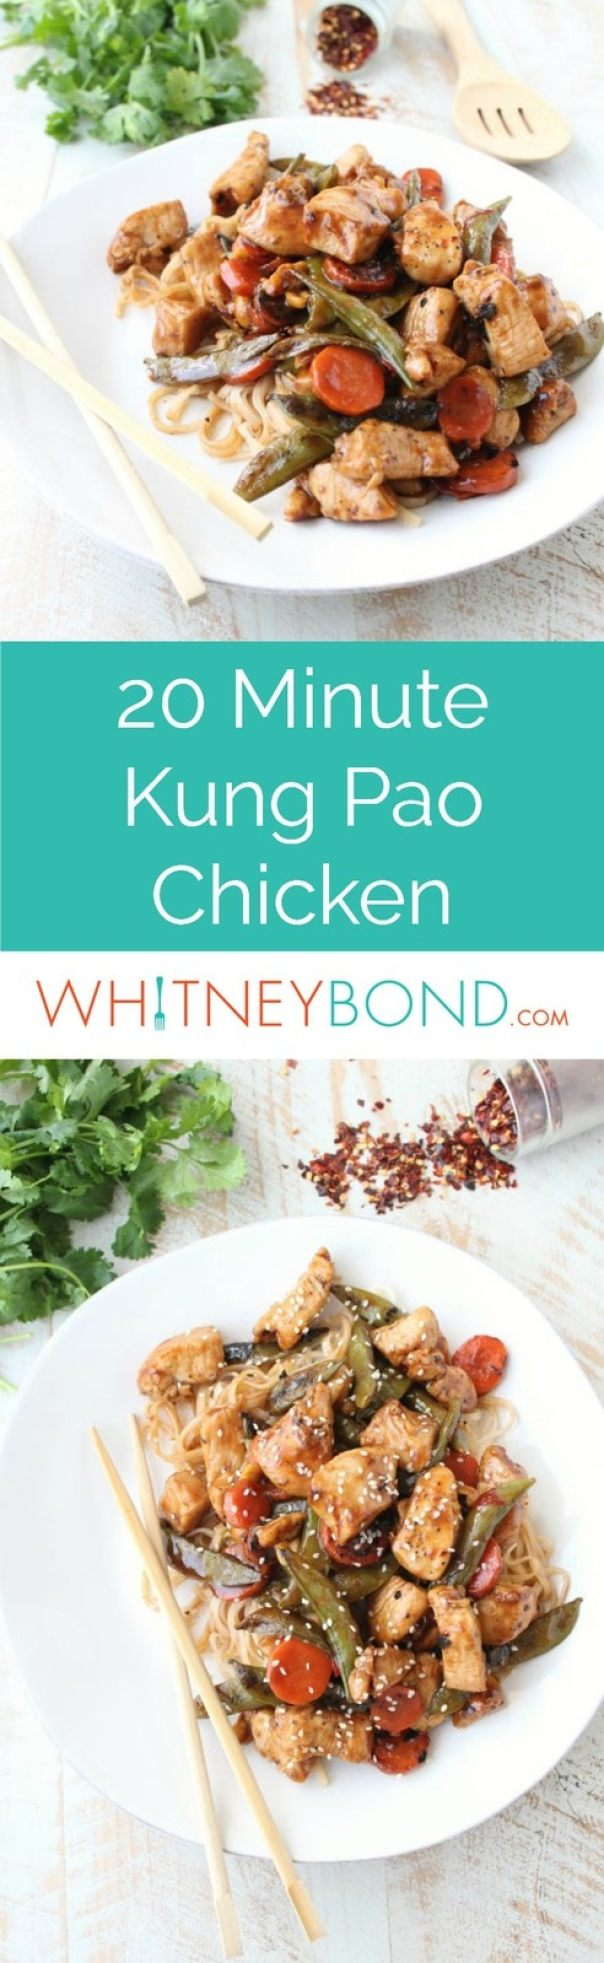 In one skillet and 20 minutes, whip up this deliciously spicy Kung Pao Chicken recipe that's so easy to make and gluten free!